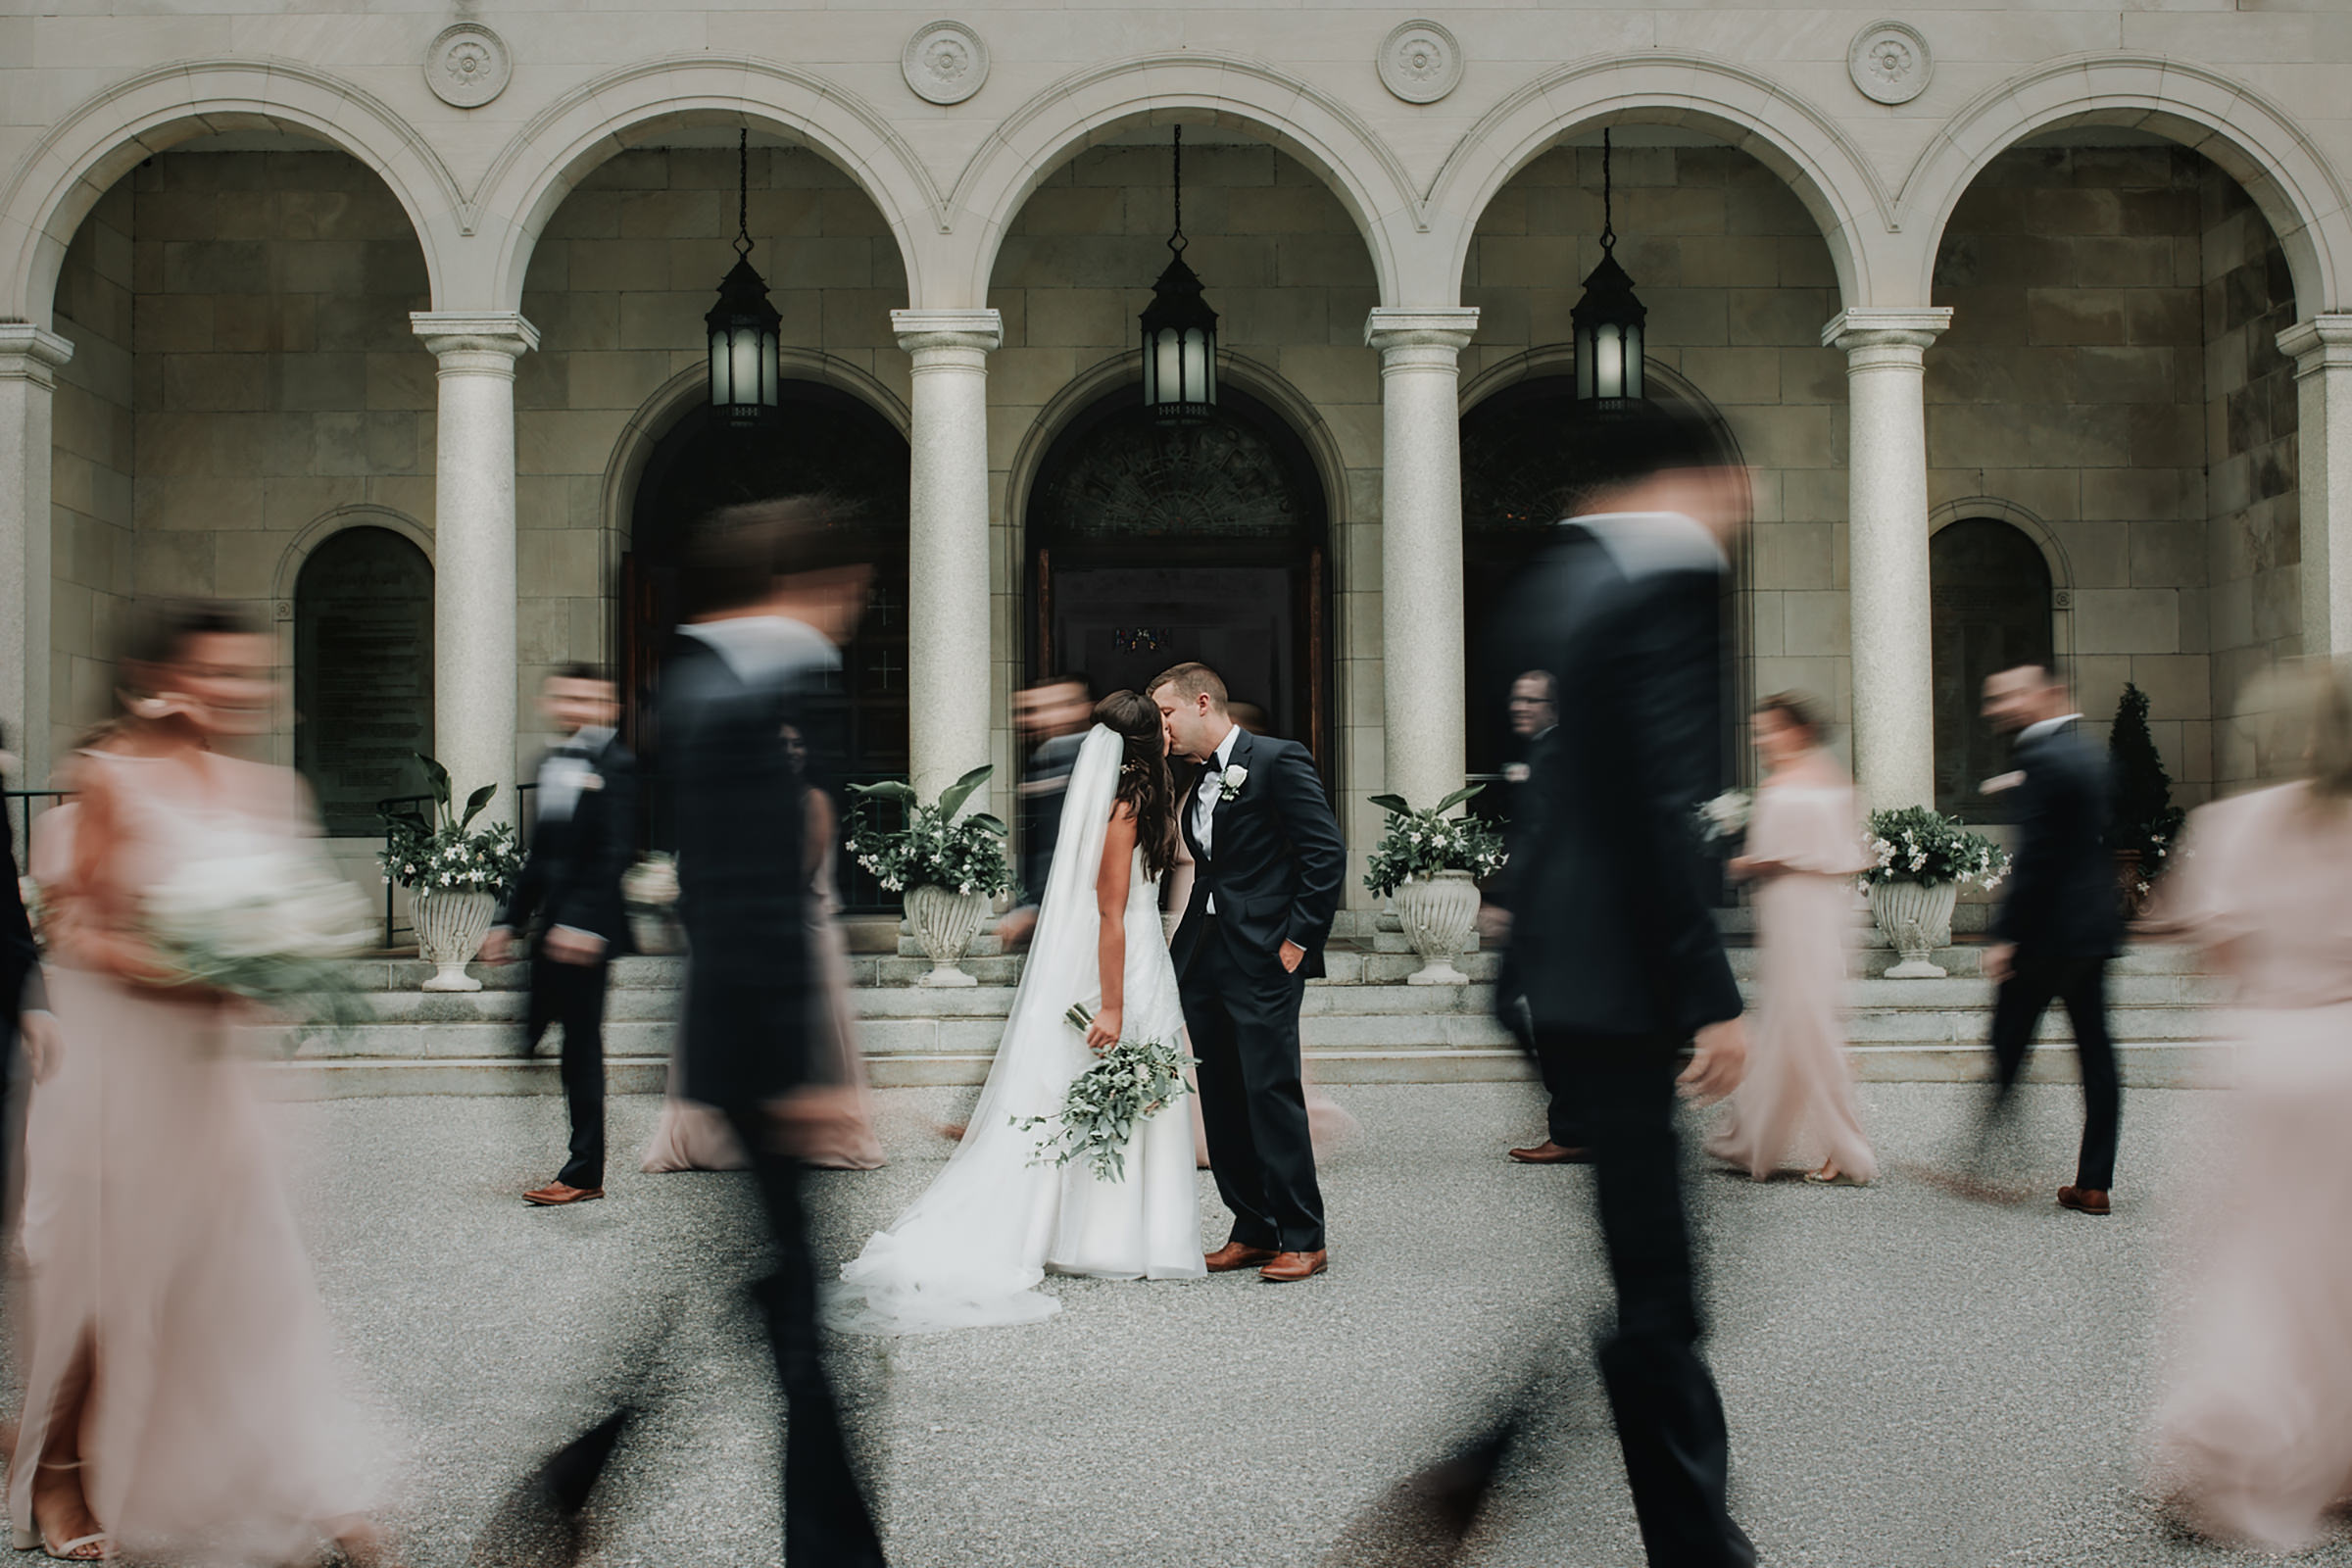 Couple kiss among wedding party at colonnade - photo by Kelli Wilke Photography